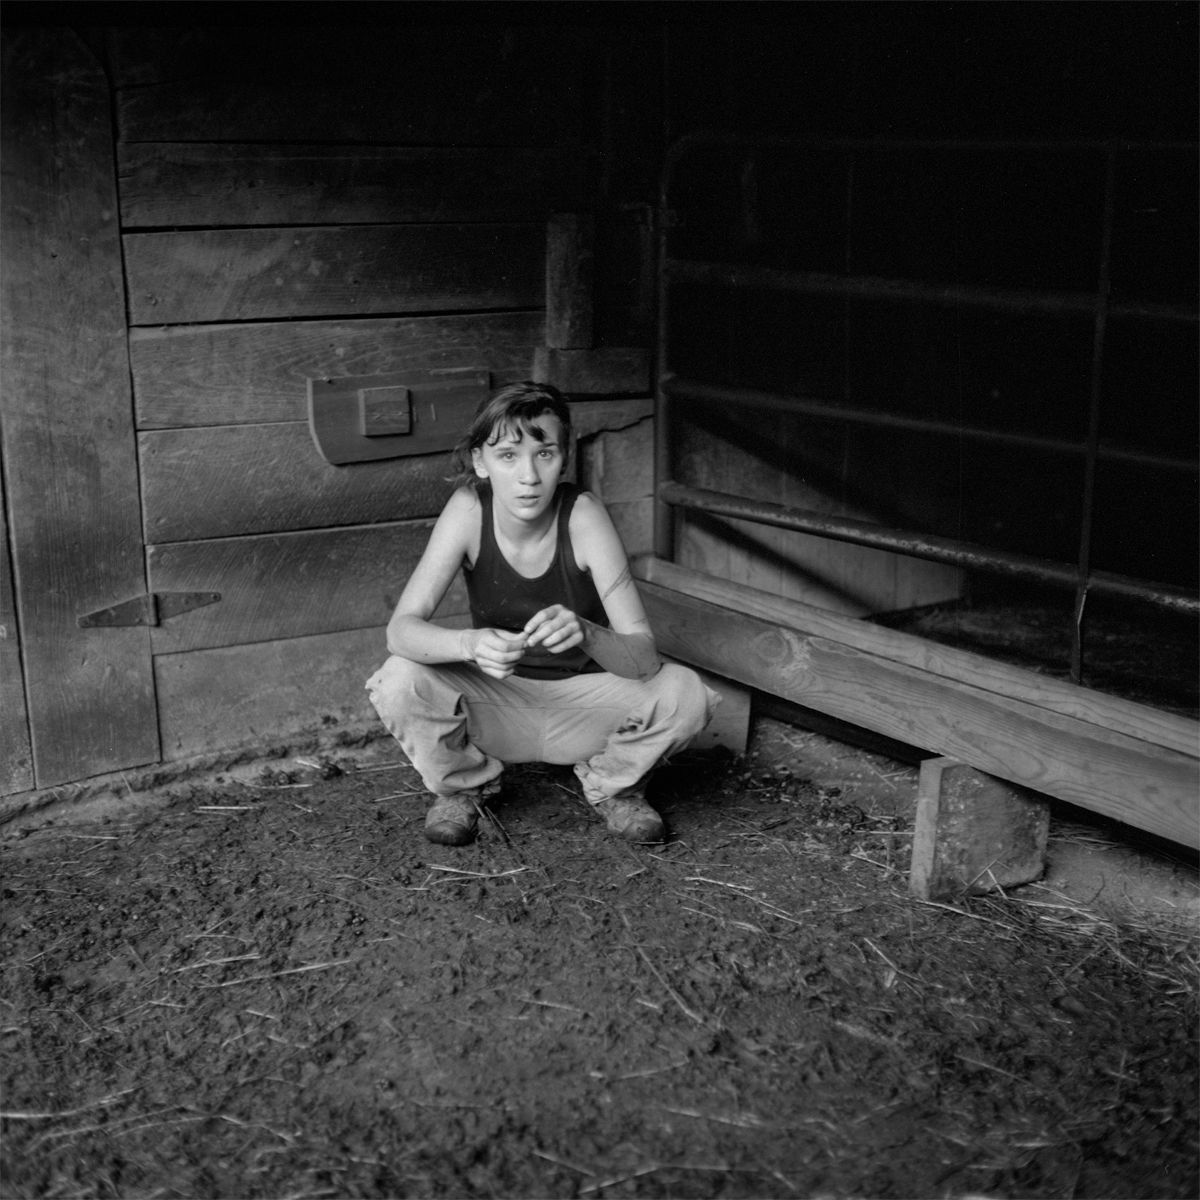 Rob Amberg, Kate in the Barn, Paw Paw, Madison County, NC, 2014, Archival Pigment Print, 5h x 5w in, Edition of 10, Photography